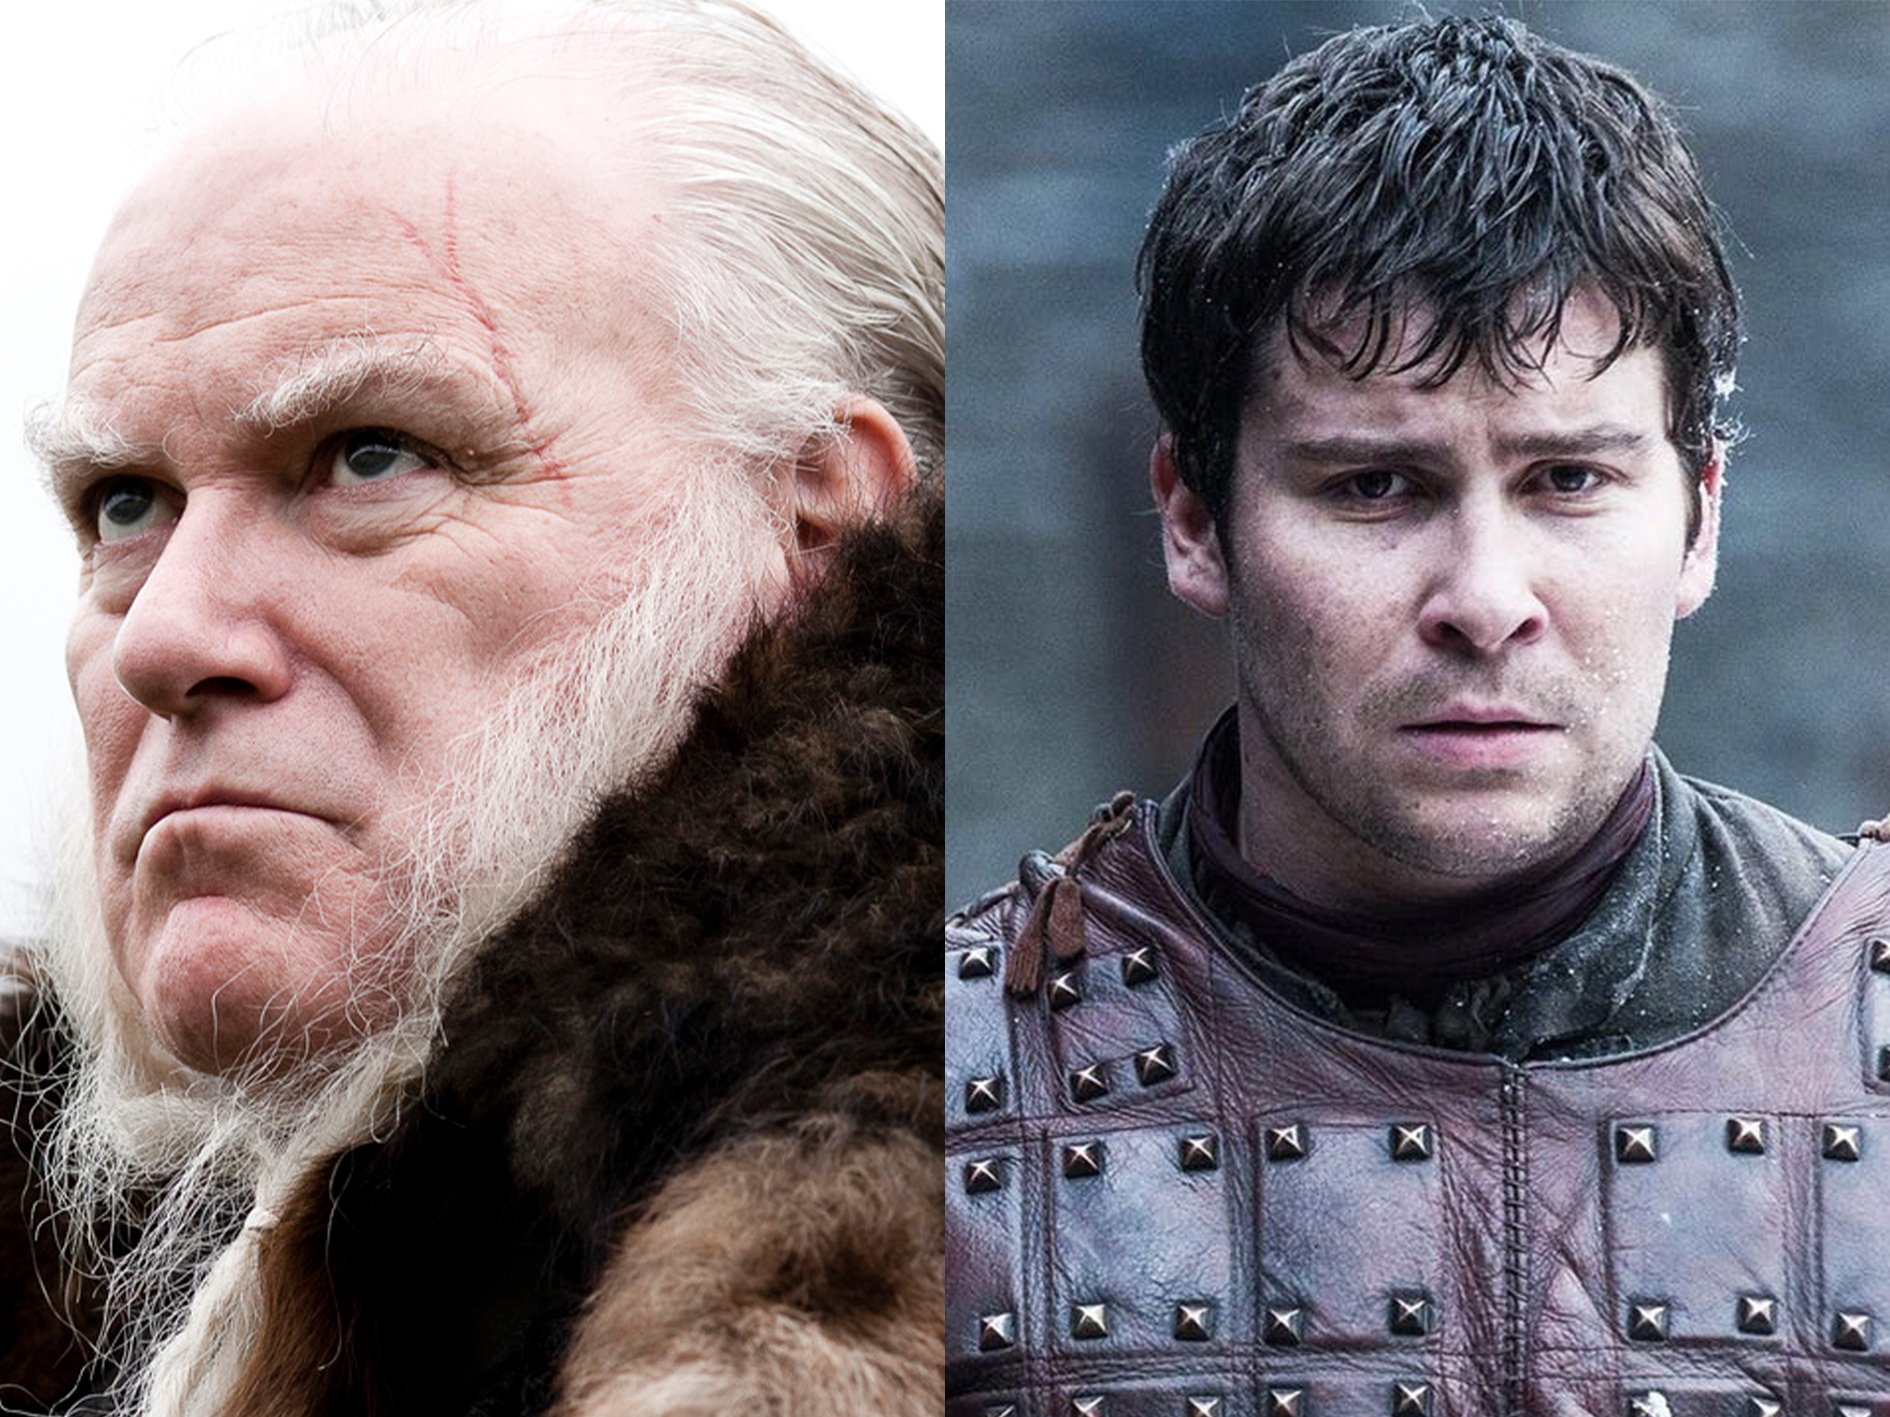 Game of Throne Rodrik Podrick 33 Things You Didn't Know About The Game of Thrones Cast